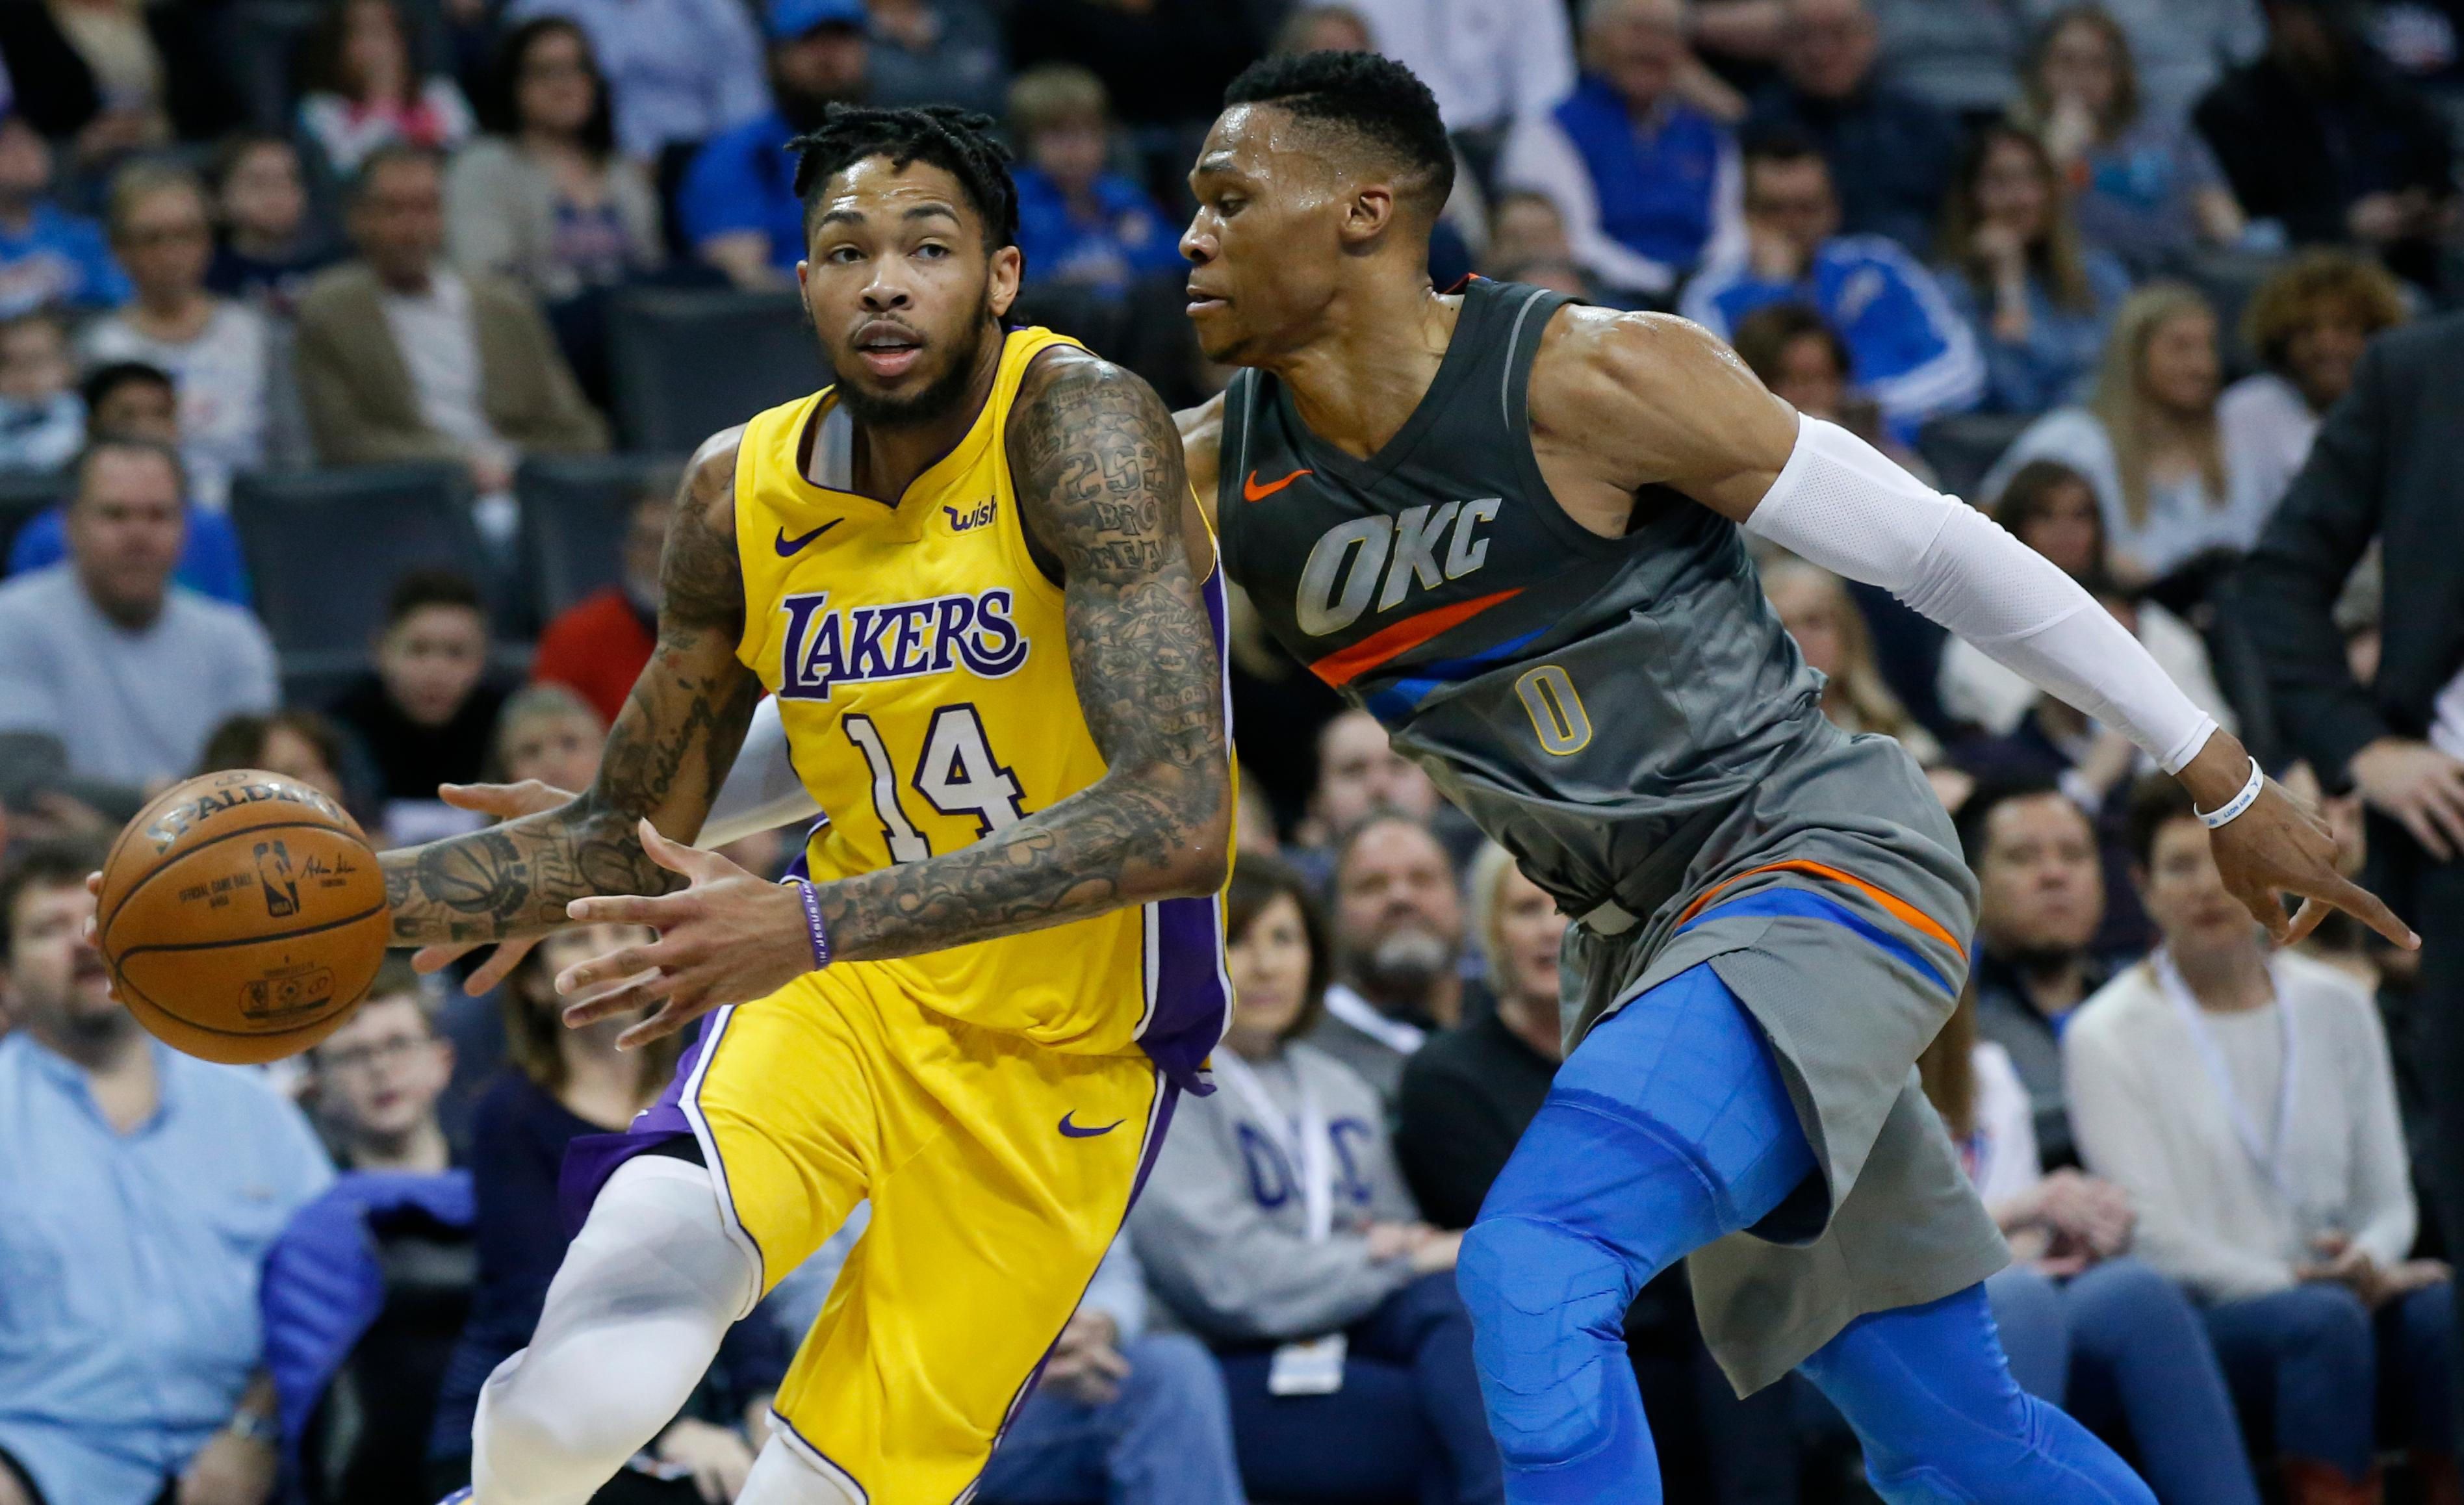 Los Angeles Lakers forward Brandon Ingram (14) drives around Oklahoma City Thunder guard Russell Westbrook (0) in the first half of an NBA basketball game in Oklahoma City, Sunday, Feb. 4, 2018. (AP Photo/Sue Ogrocki)